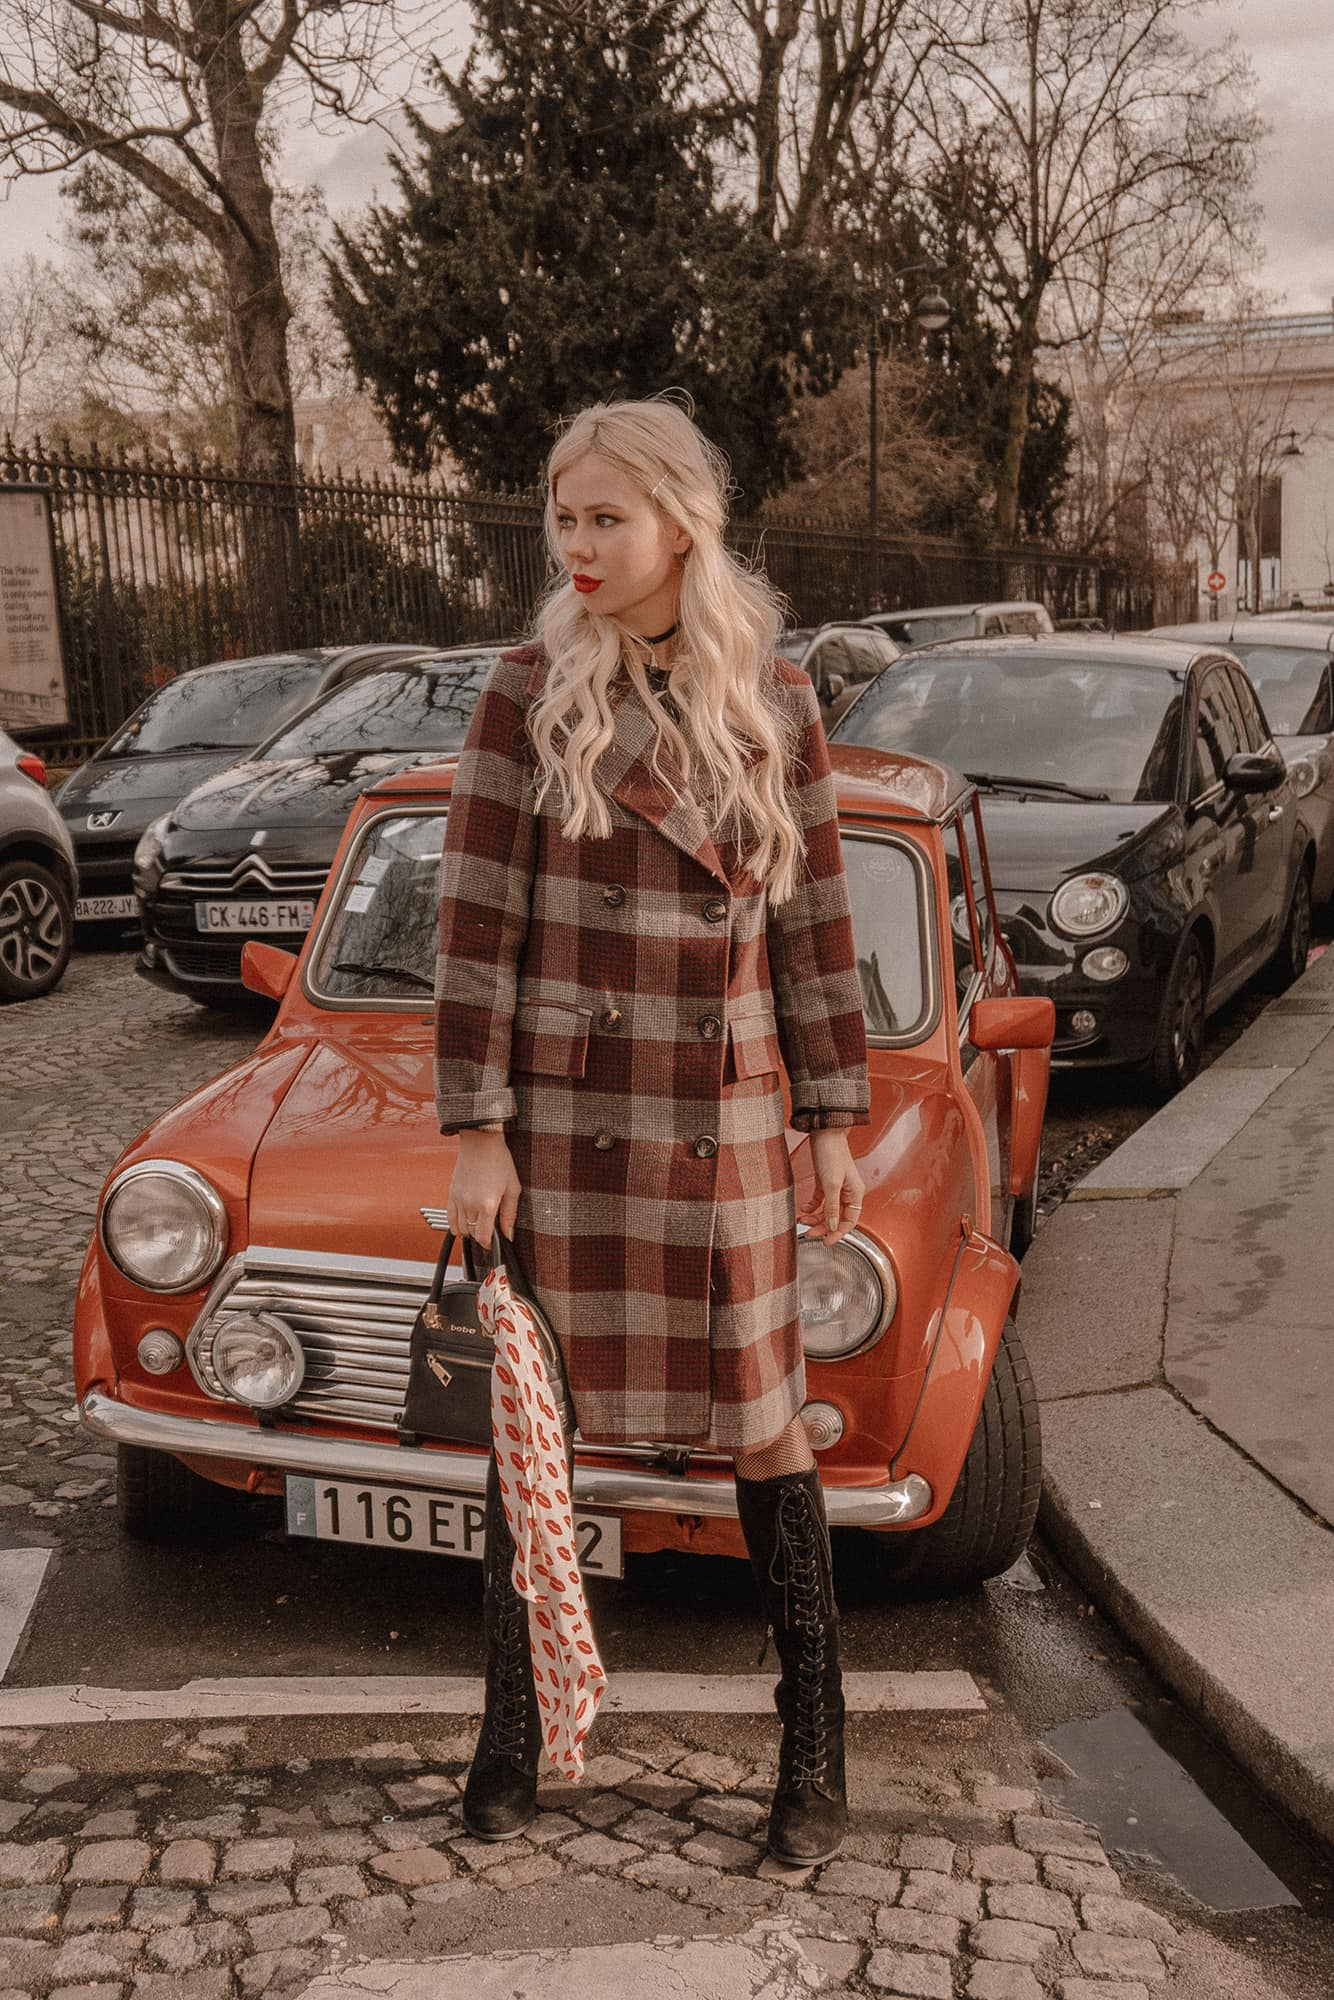 SarahLoven Paris Vintage Car6